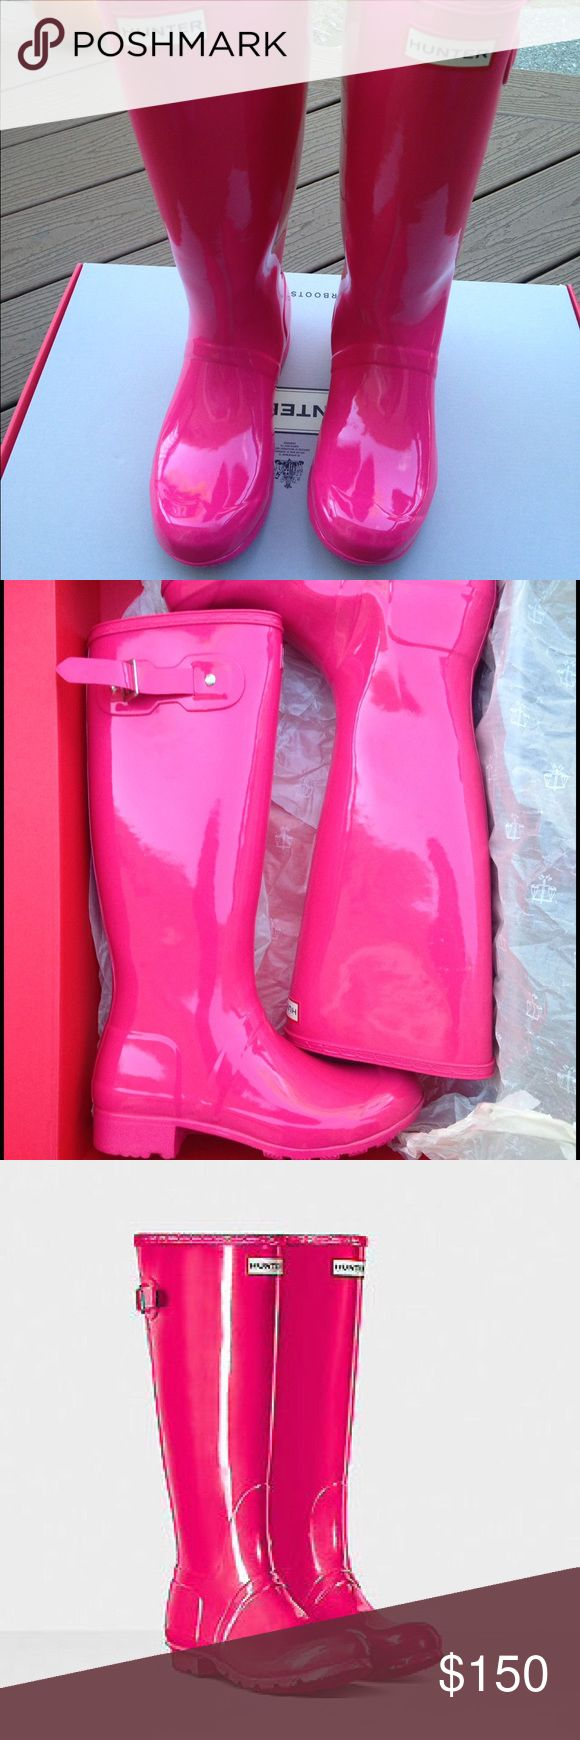 NIB, size 7 Bright Cerise (Pink) Hunter boots Price Firm---Not interested in any trades.  Selling to finance Huntress boots. These are NIB and go perfectly with a Lilly Pulitzer wardrobe. Hunter Boots Shoes Winter & Rain Boots